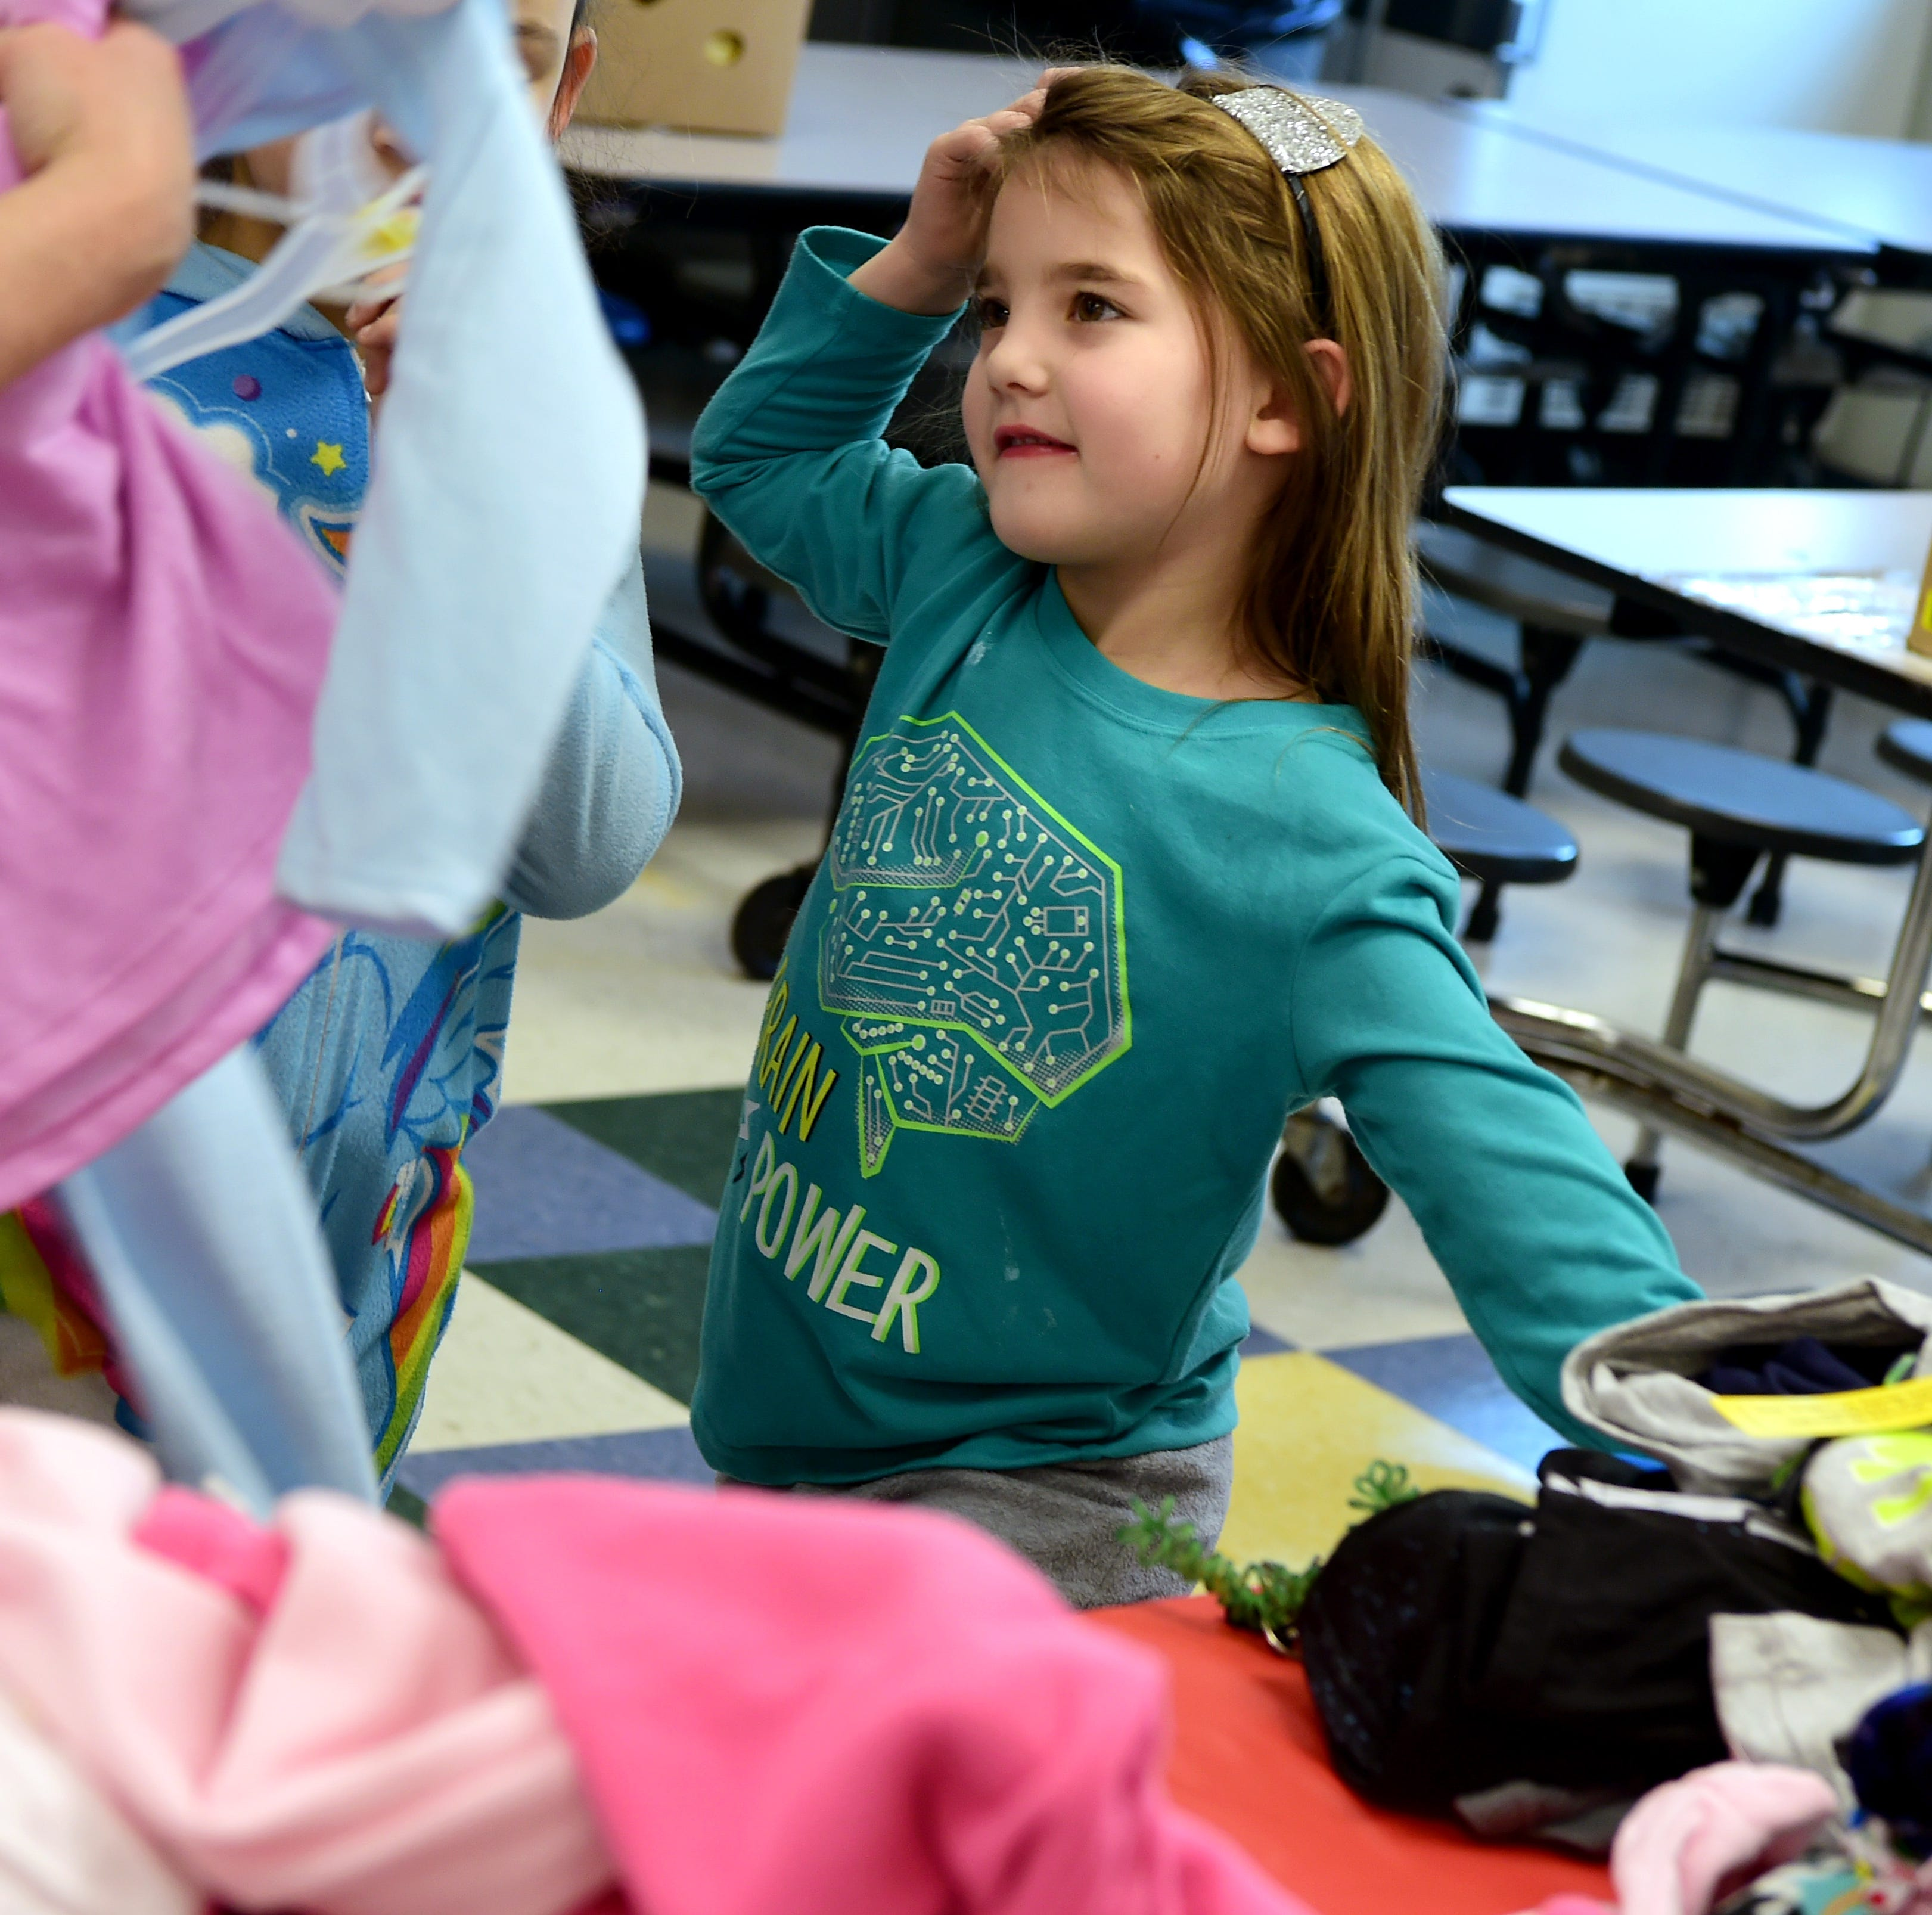 The poll is open: Vote for your school's holiday drive to be featured in our weekly series